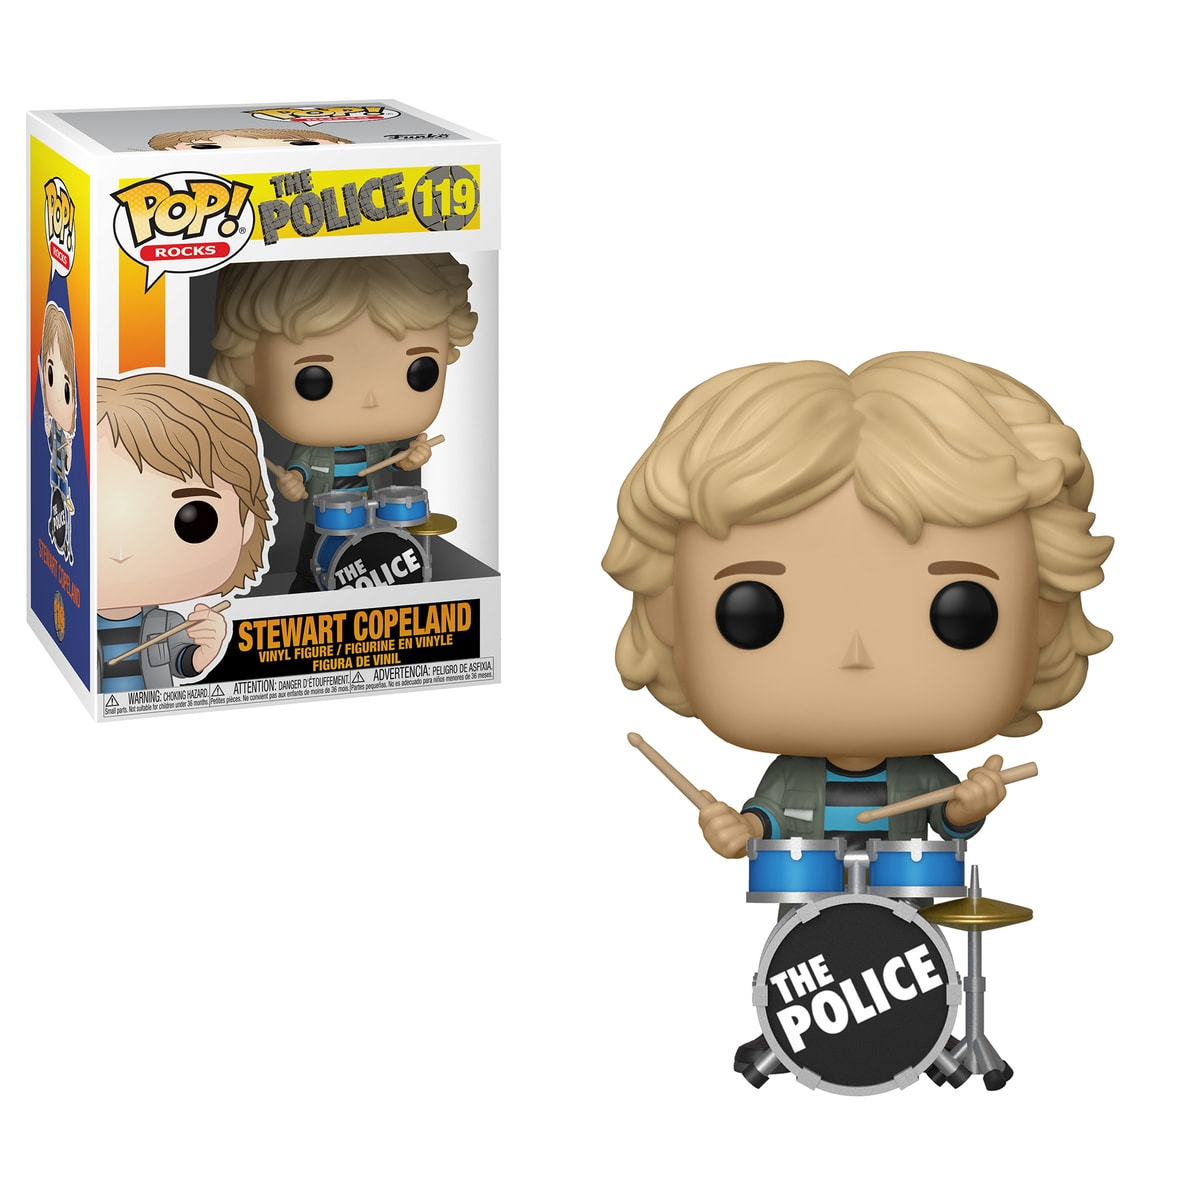 Funko POP Rocks: The Police - Stewart Copeland